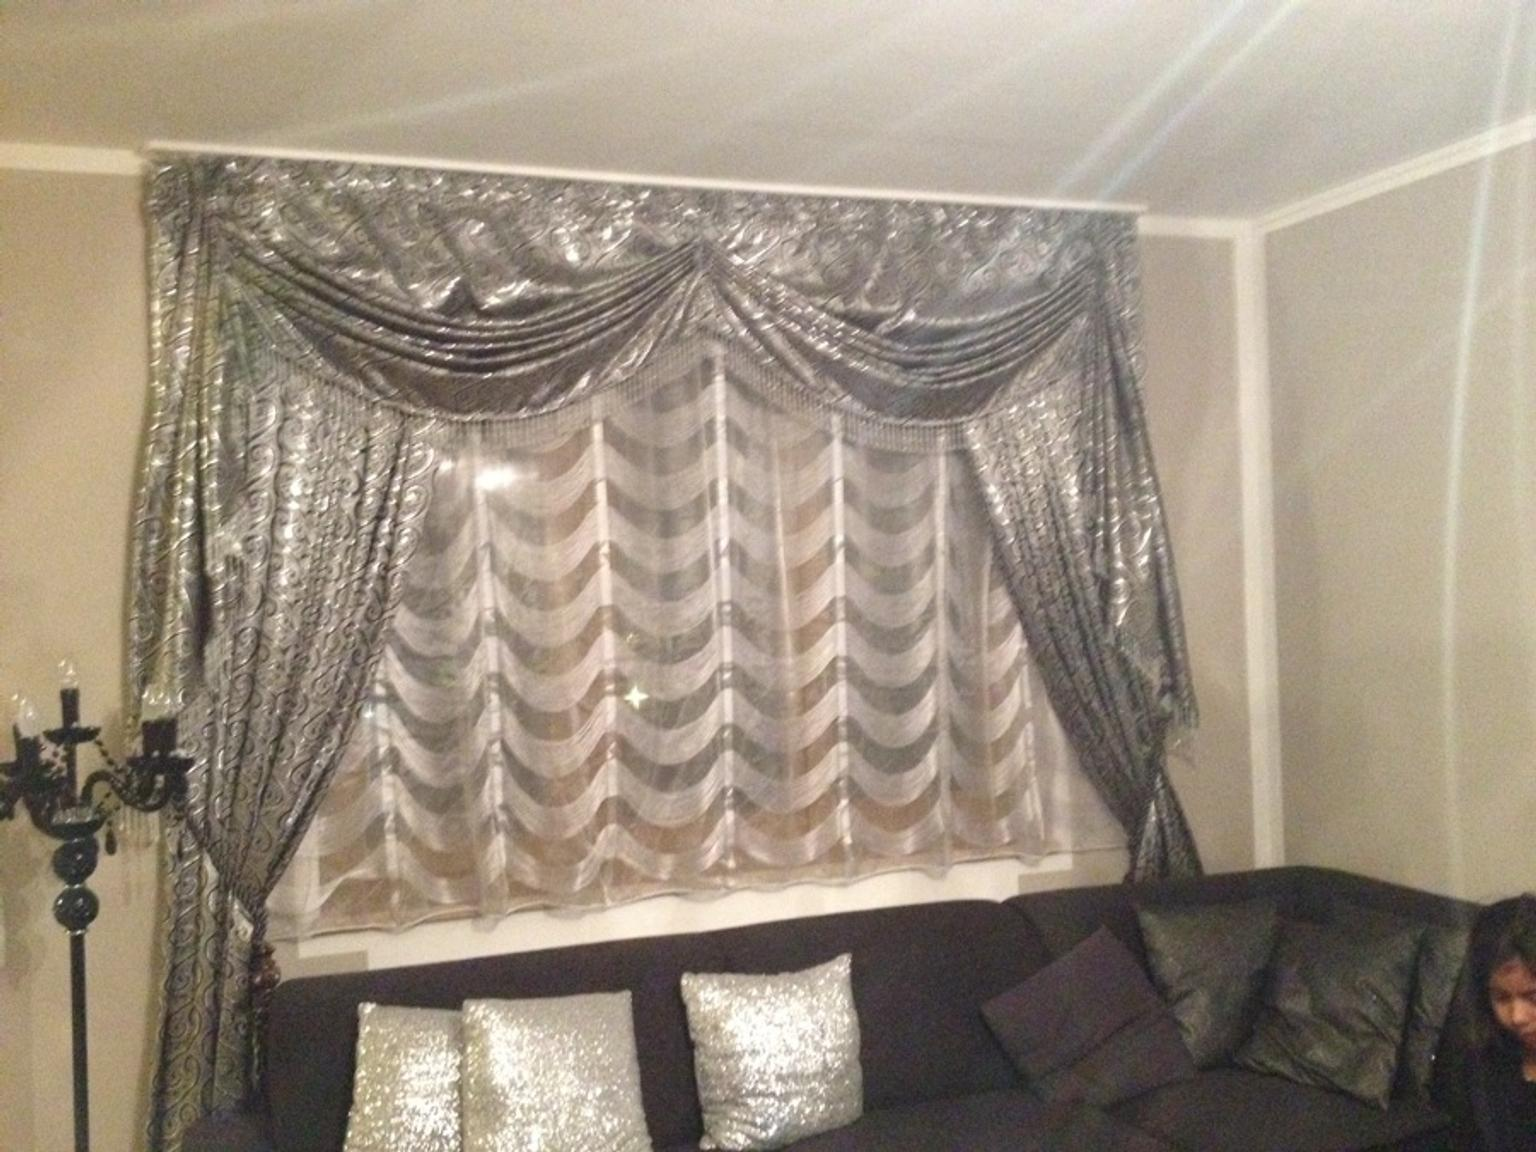 Orientalische Gardinen orientalische gardine in 80639 münchen for €150.00 for sale - shpock